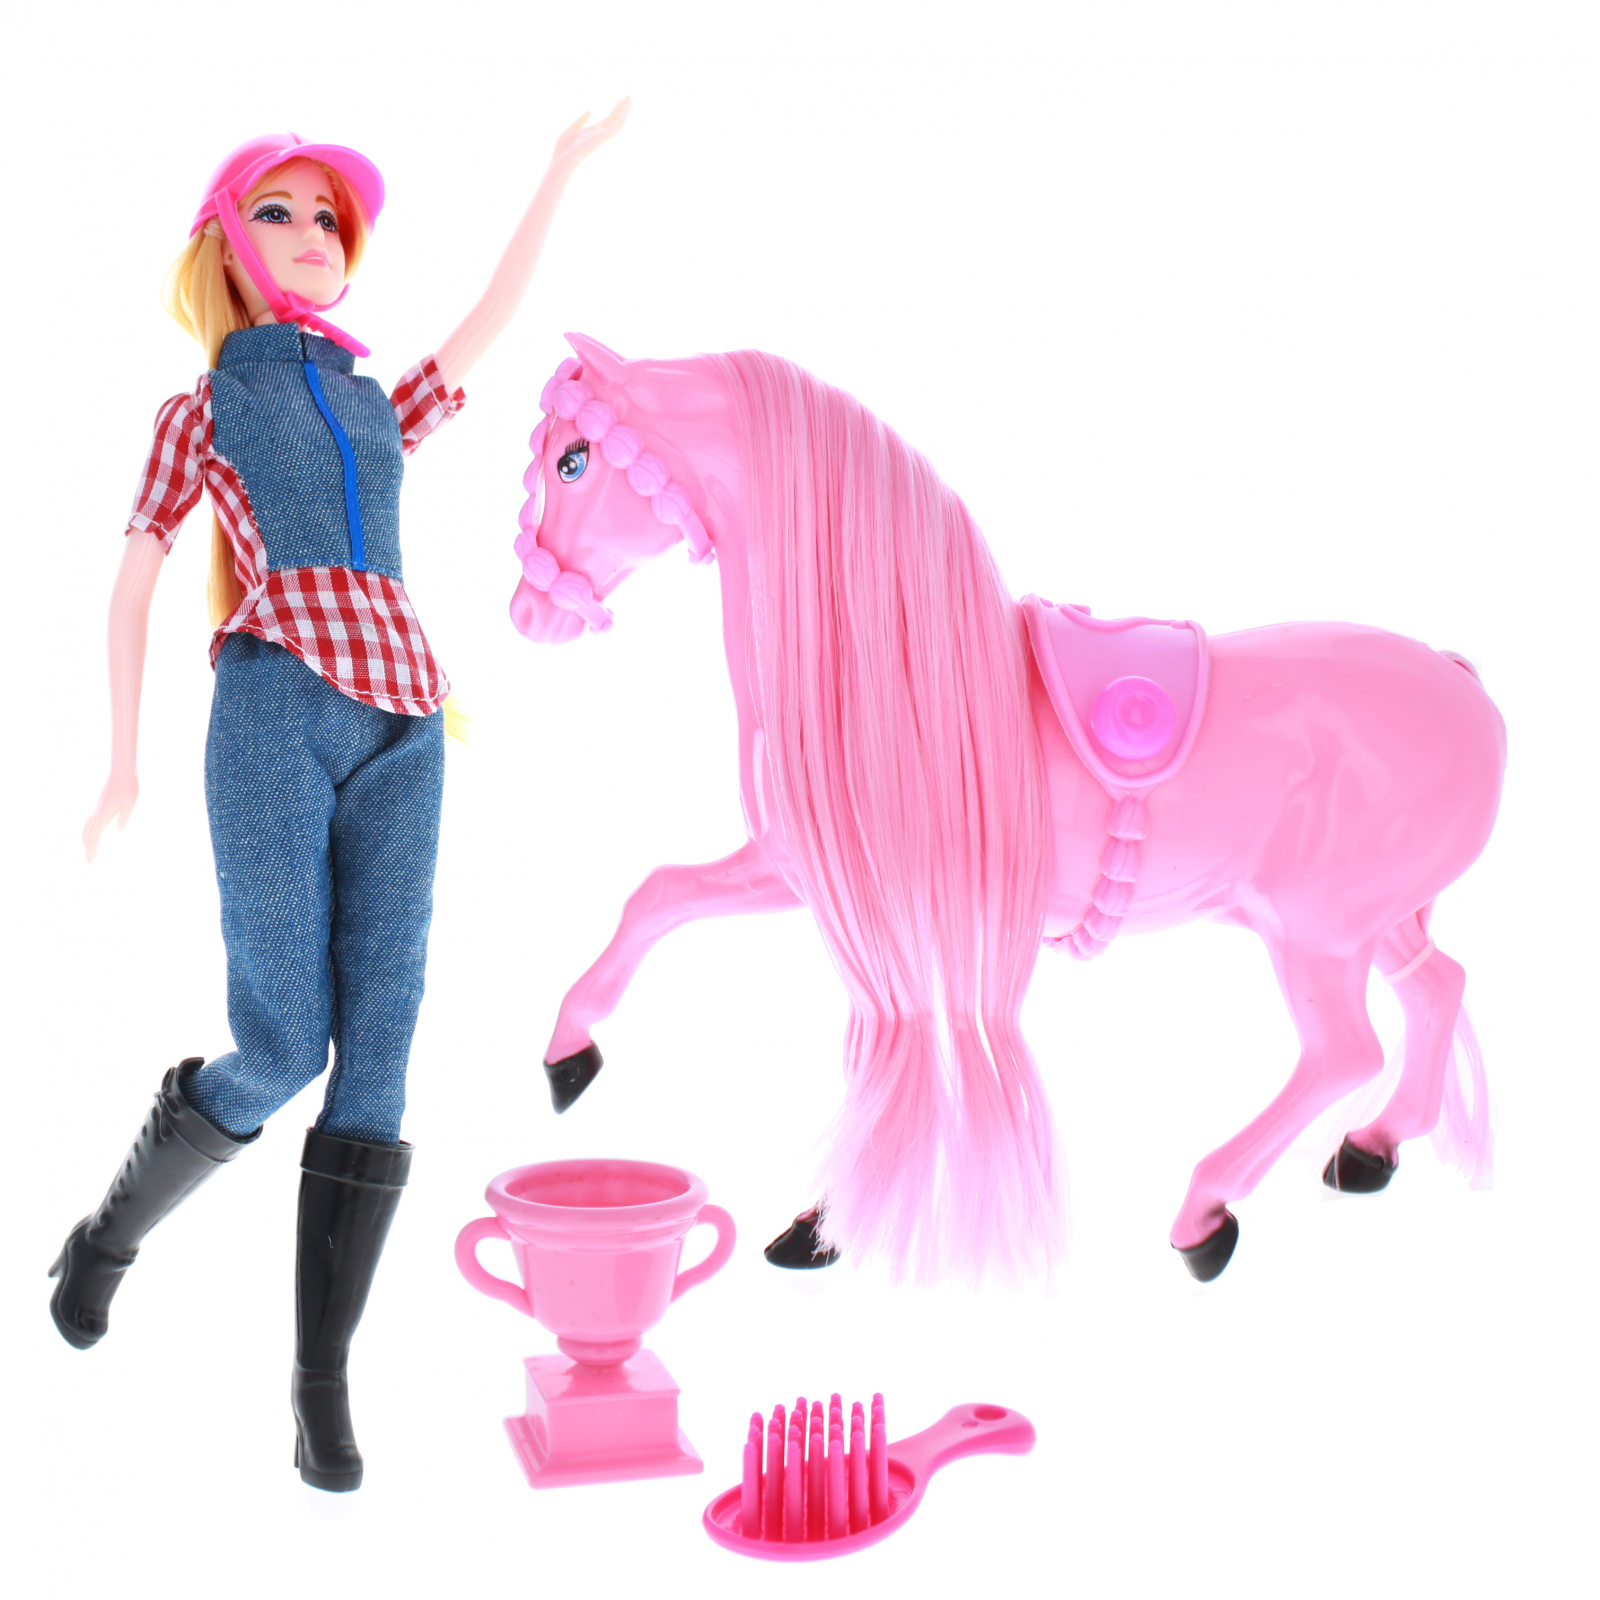 Blonde Doll and Pink Horse Show Play Set With Accessories